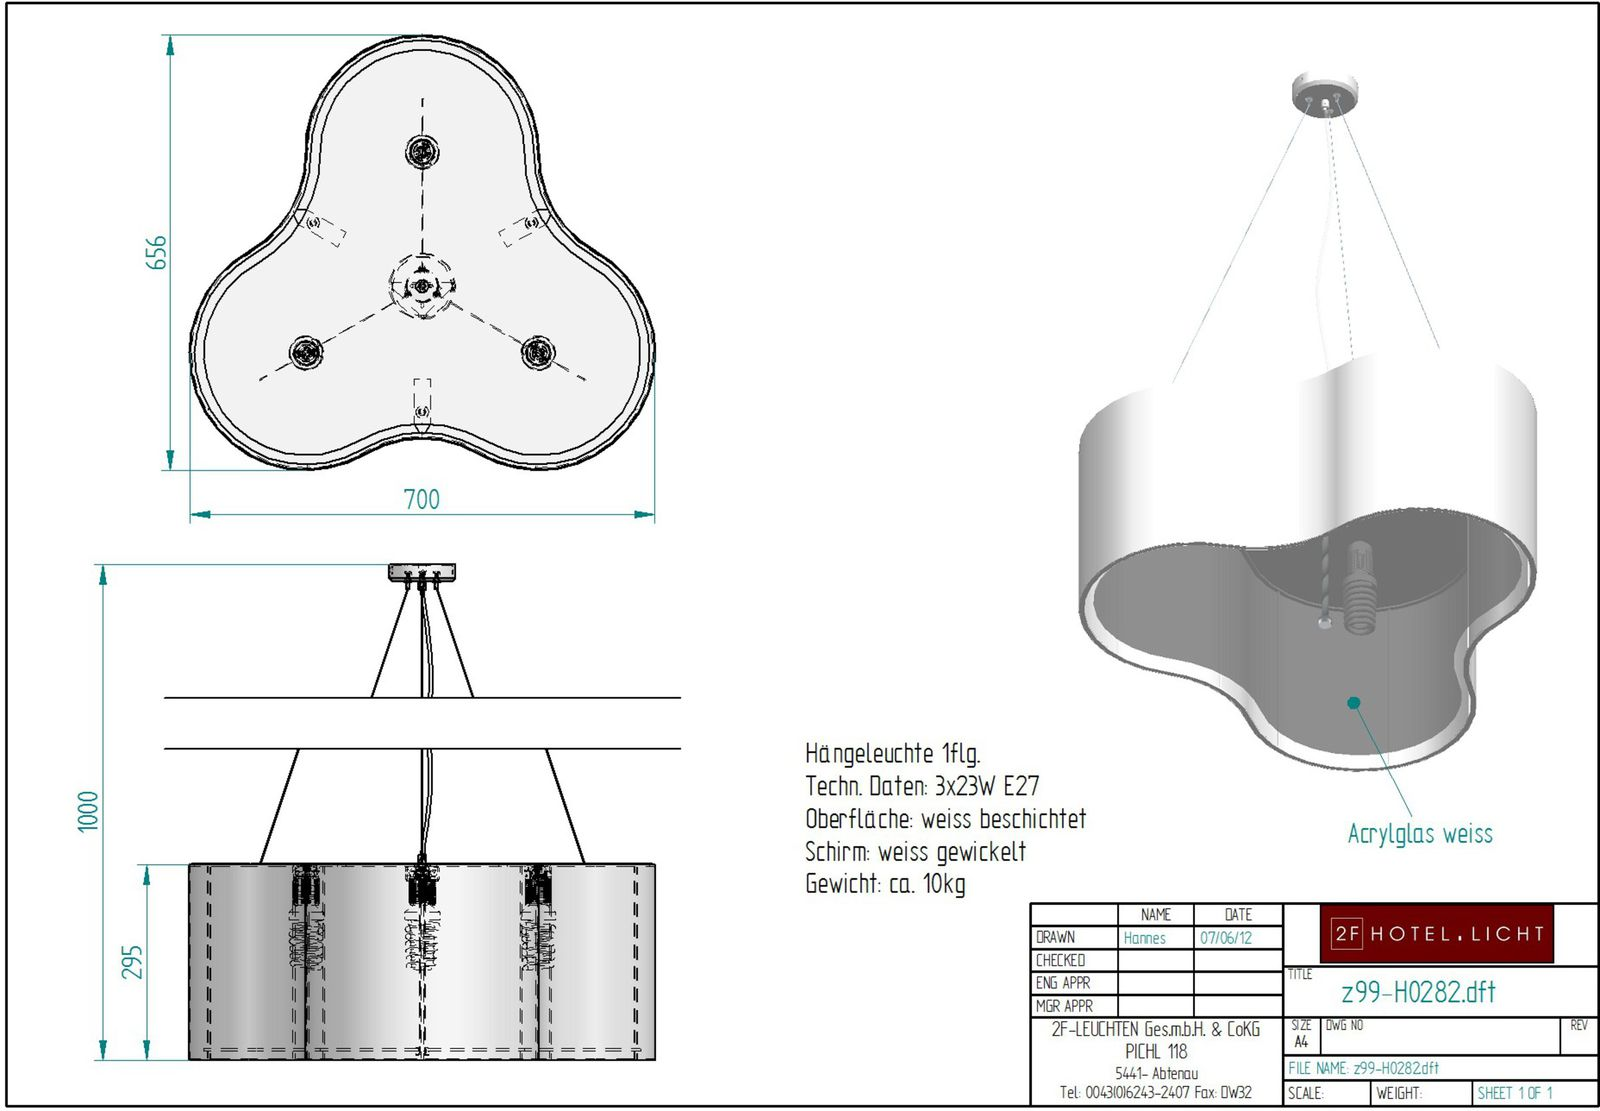 Pendant lamp, lenght=700mm, wide=656mm, height=1000mm, surface: white, techn. details: 3xE27, 3x 23W